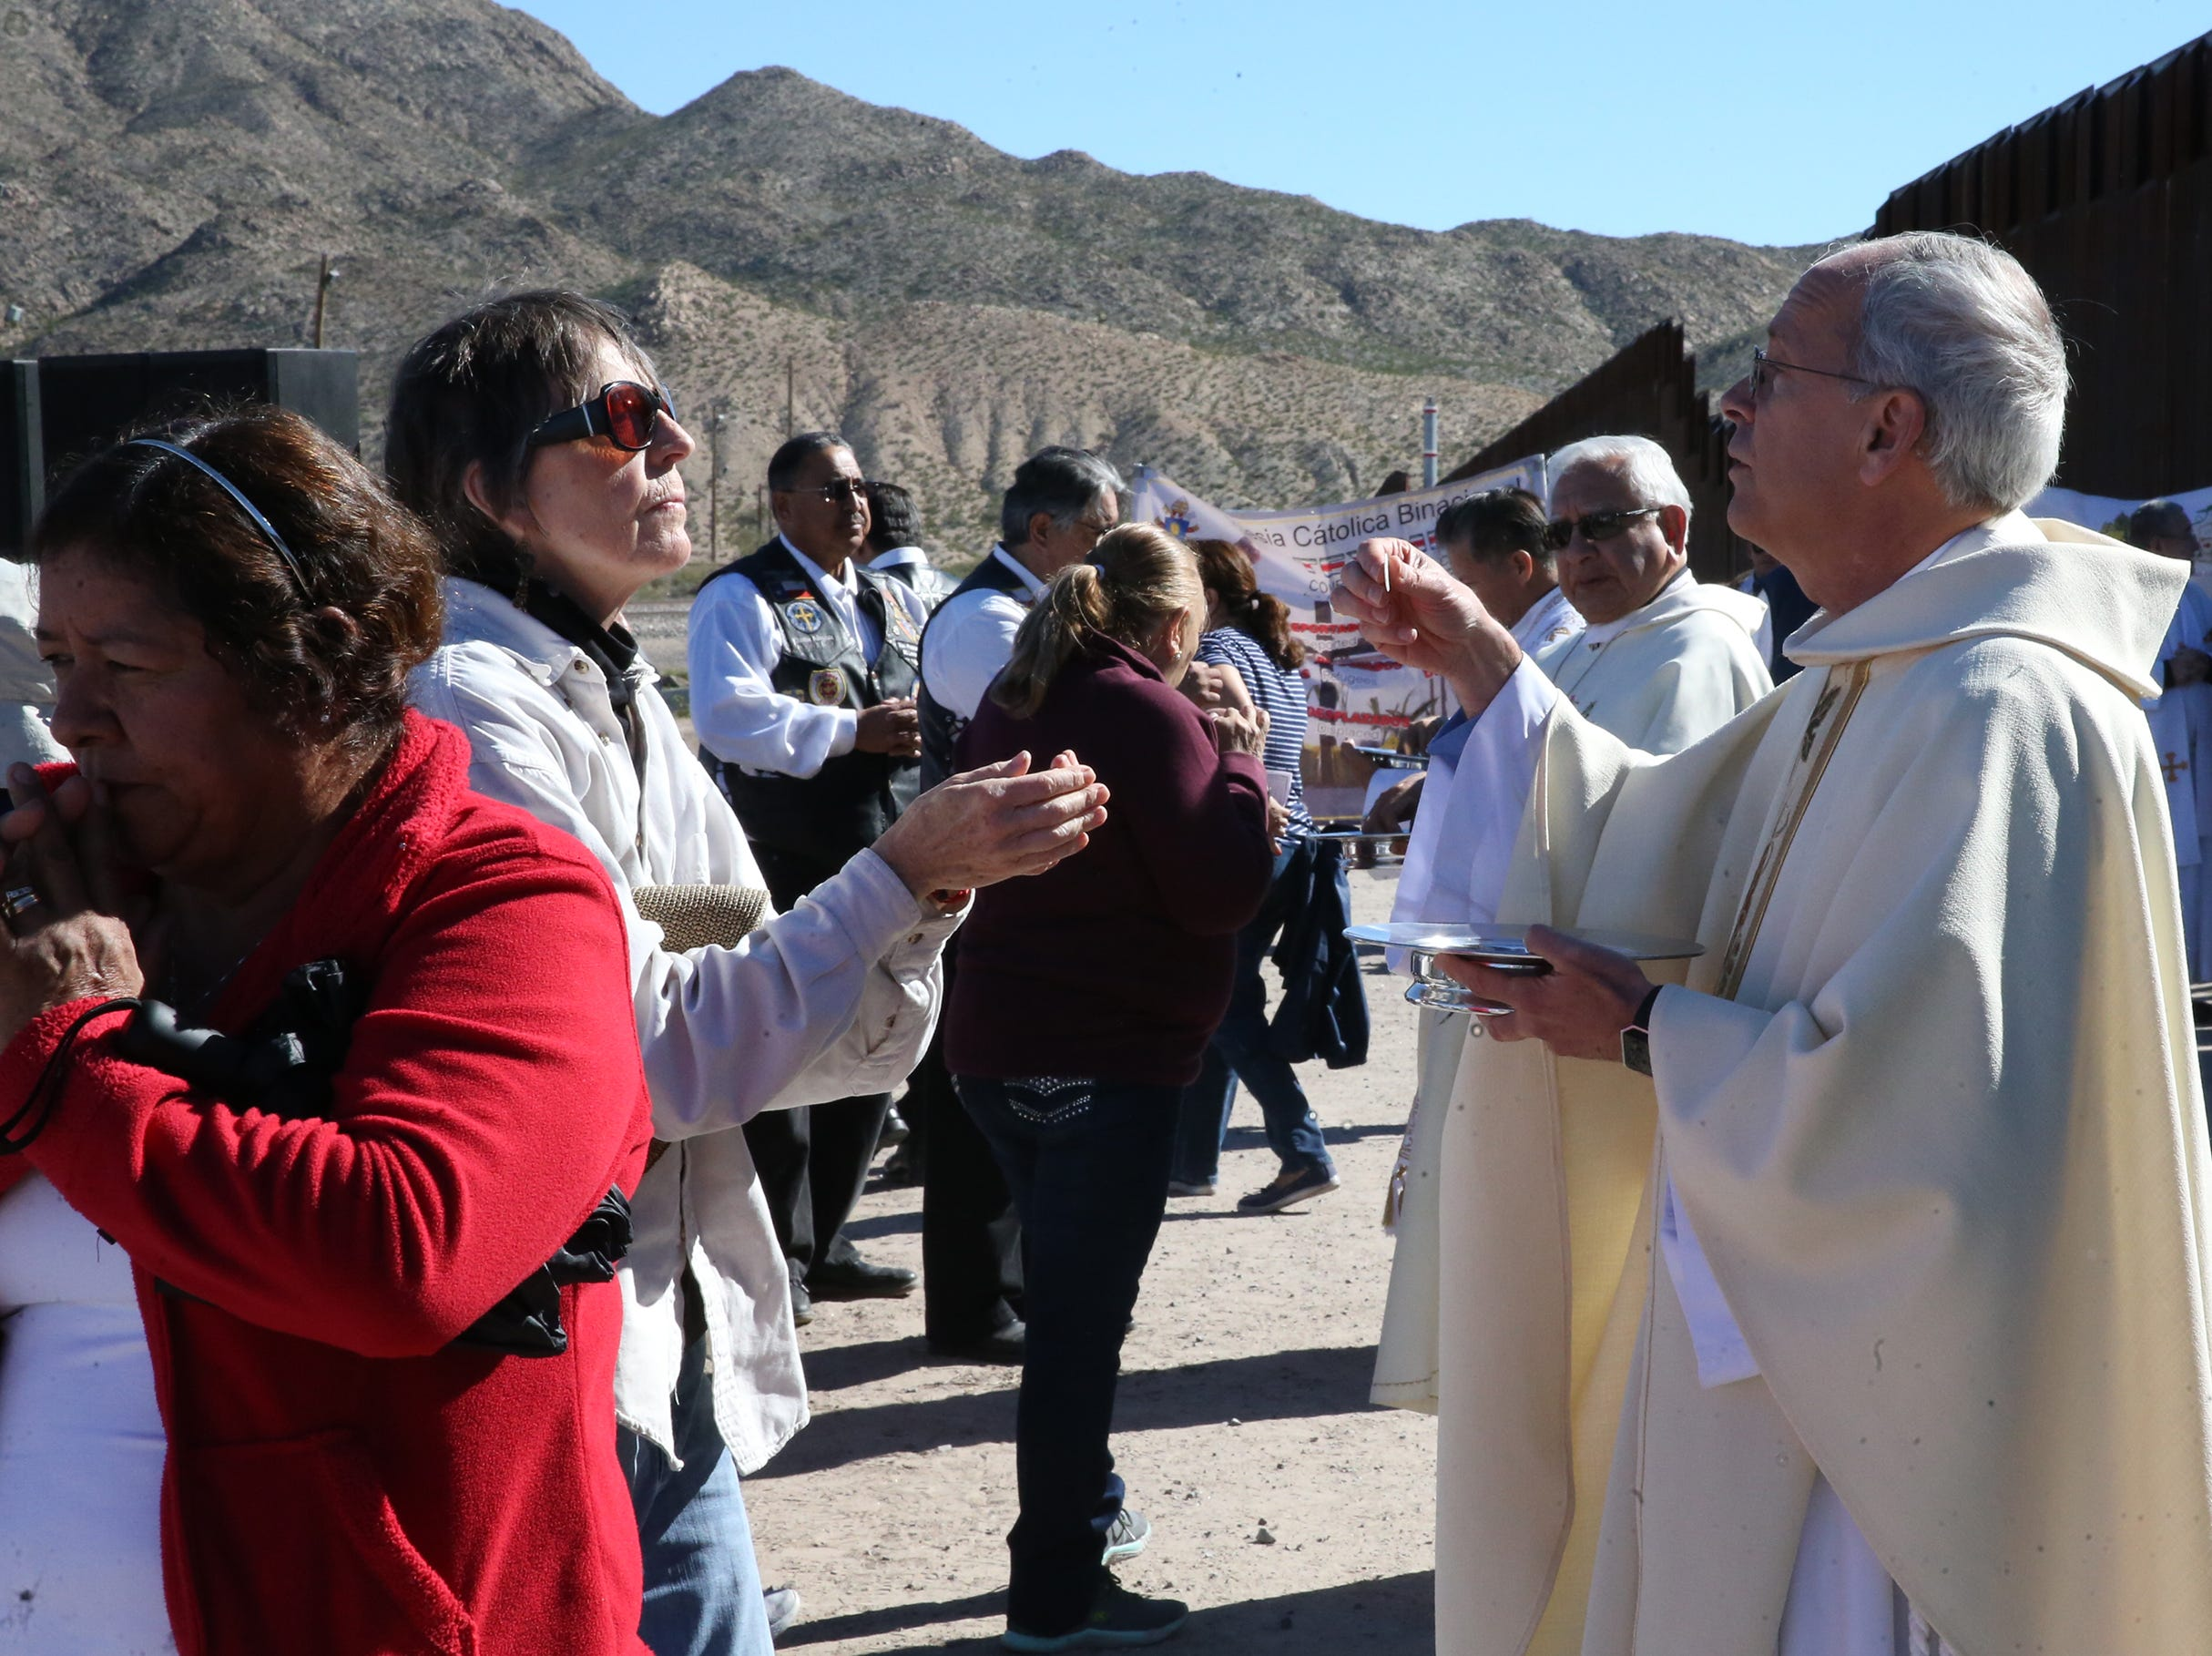 El Paso Catholic Bishop Mark Seitz, foreground, and Las Cruces bishop emeritus Ricardo Ramirez administer communion during the annual Border Mass held at the border fence in the Anapra area of Sunland Park, N.M. Saturday. The event took place on both sides of the border with Juarez Catholic clergy taking part across the fence in the Anapra area of Juarez.